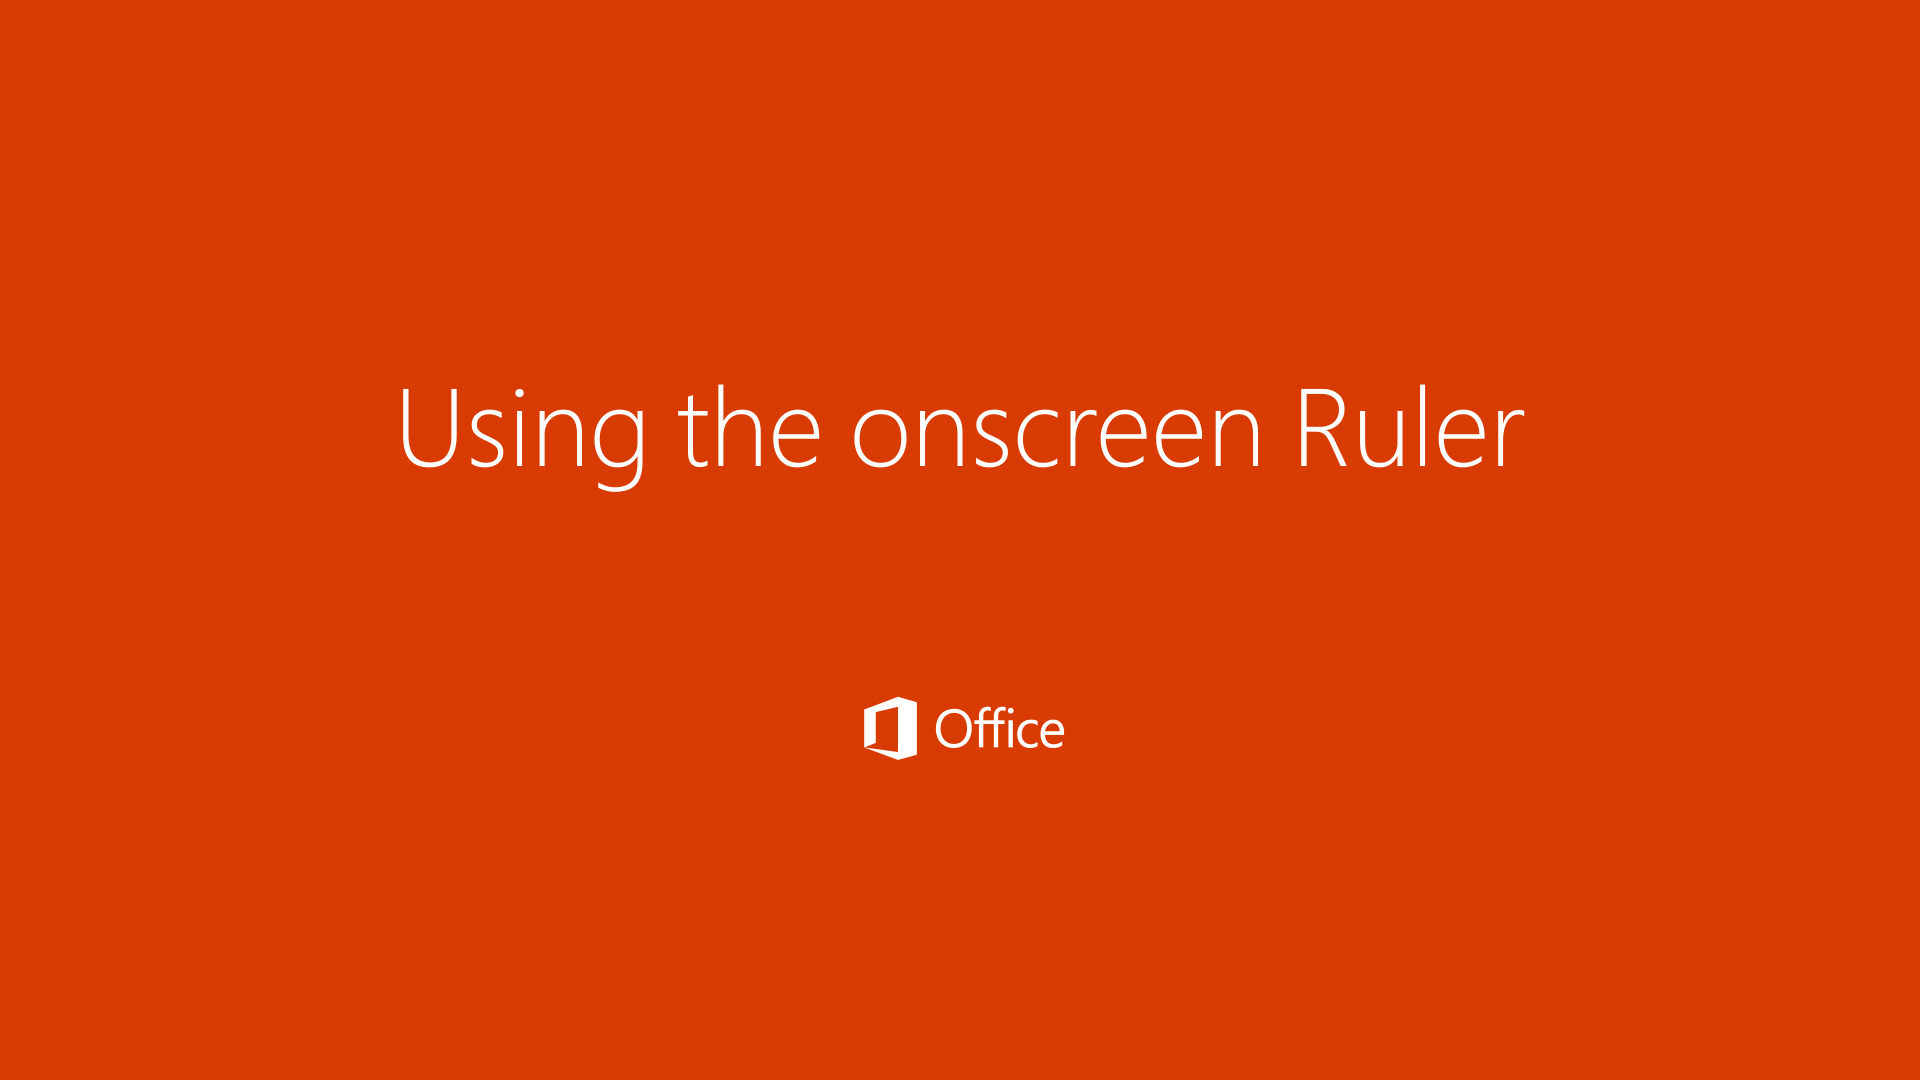 Using the onscreen Ruler